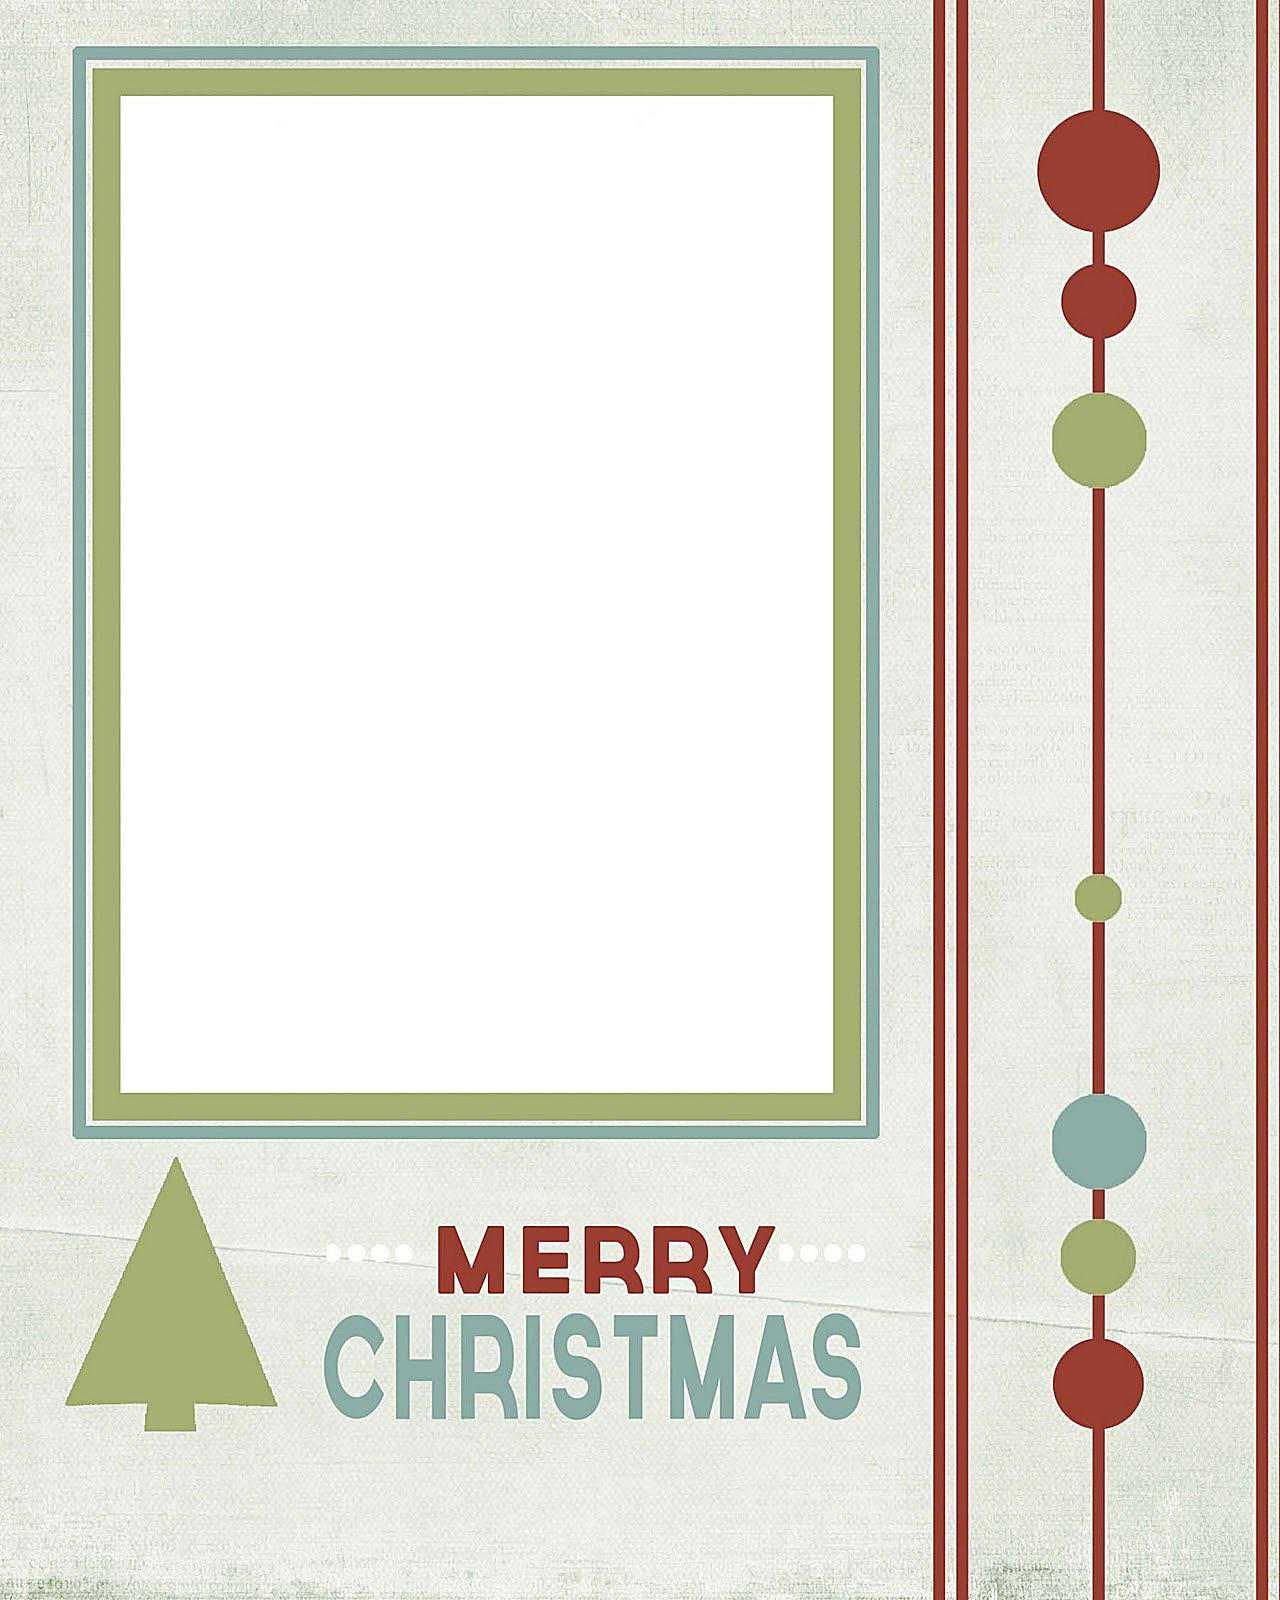 Photo Card Templates Falep Midnightpig Co In Free Photoshop Free Christmas Photo Card Templates Christmas Card Templates Free Free Printable Christmas Cards